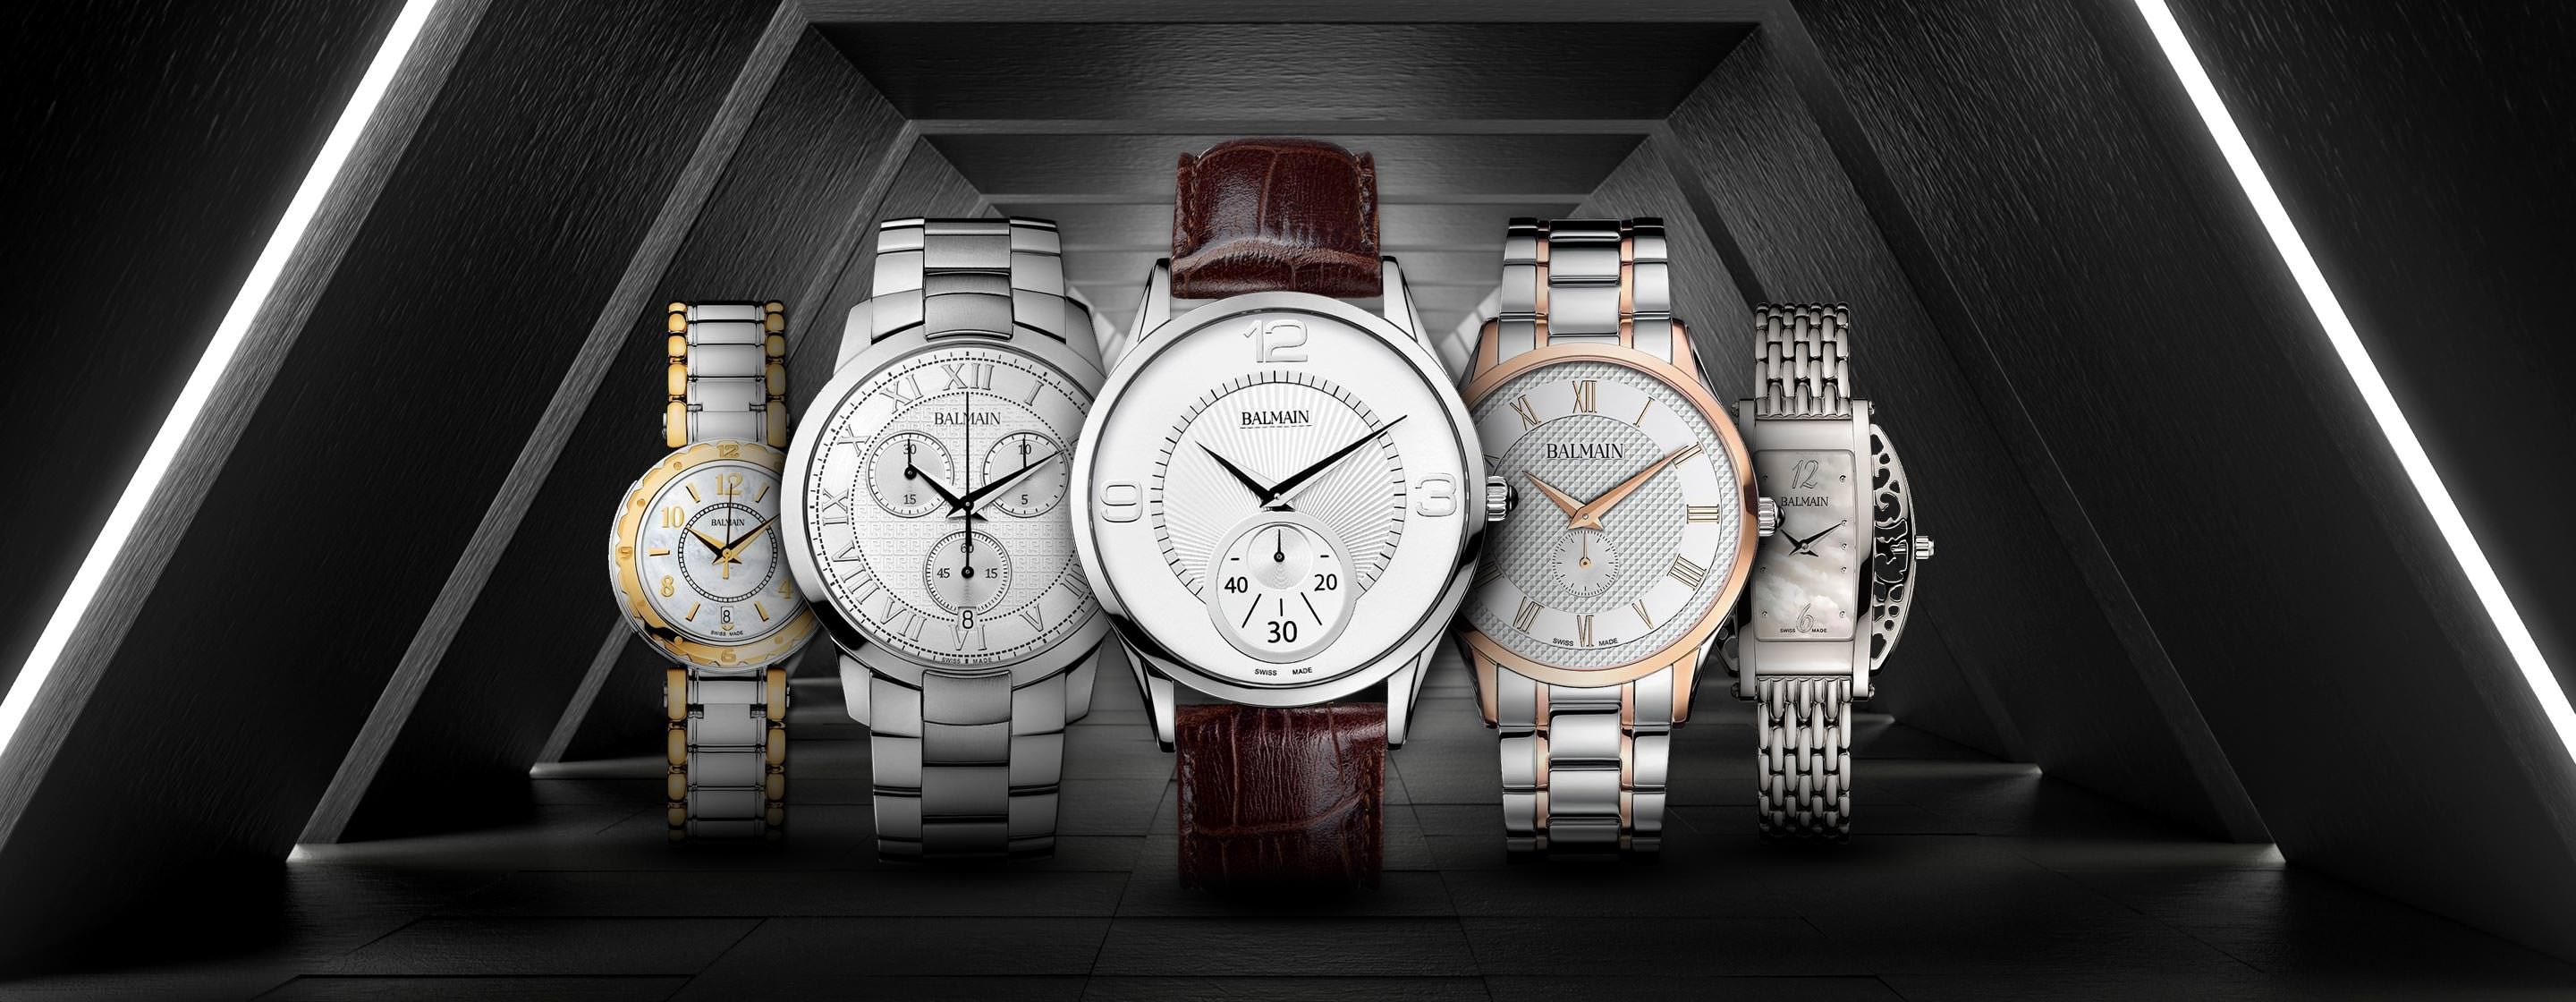 c56b00586e5 Ten Balmain Watches That Are Sure to Up Your Style Quotient - The ...